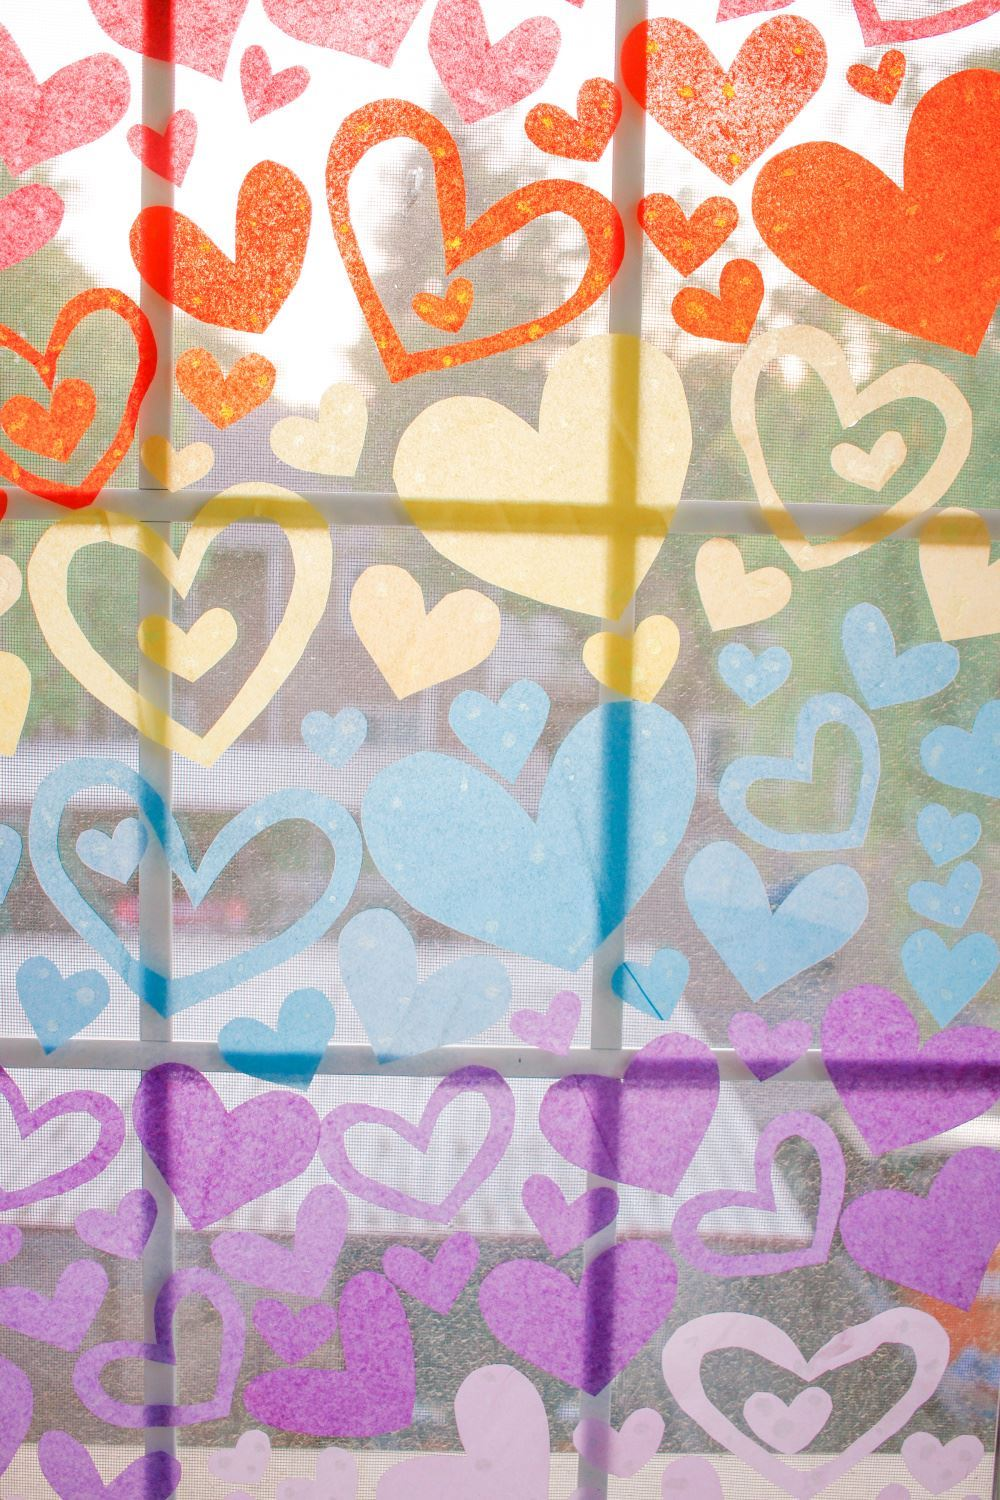 Aleene's Rainbow Paper Hearts Window Display